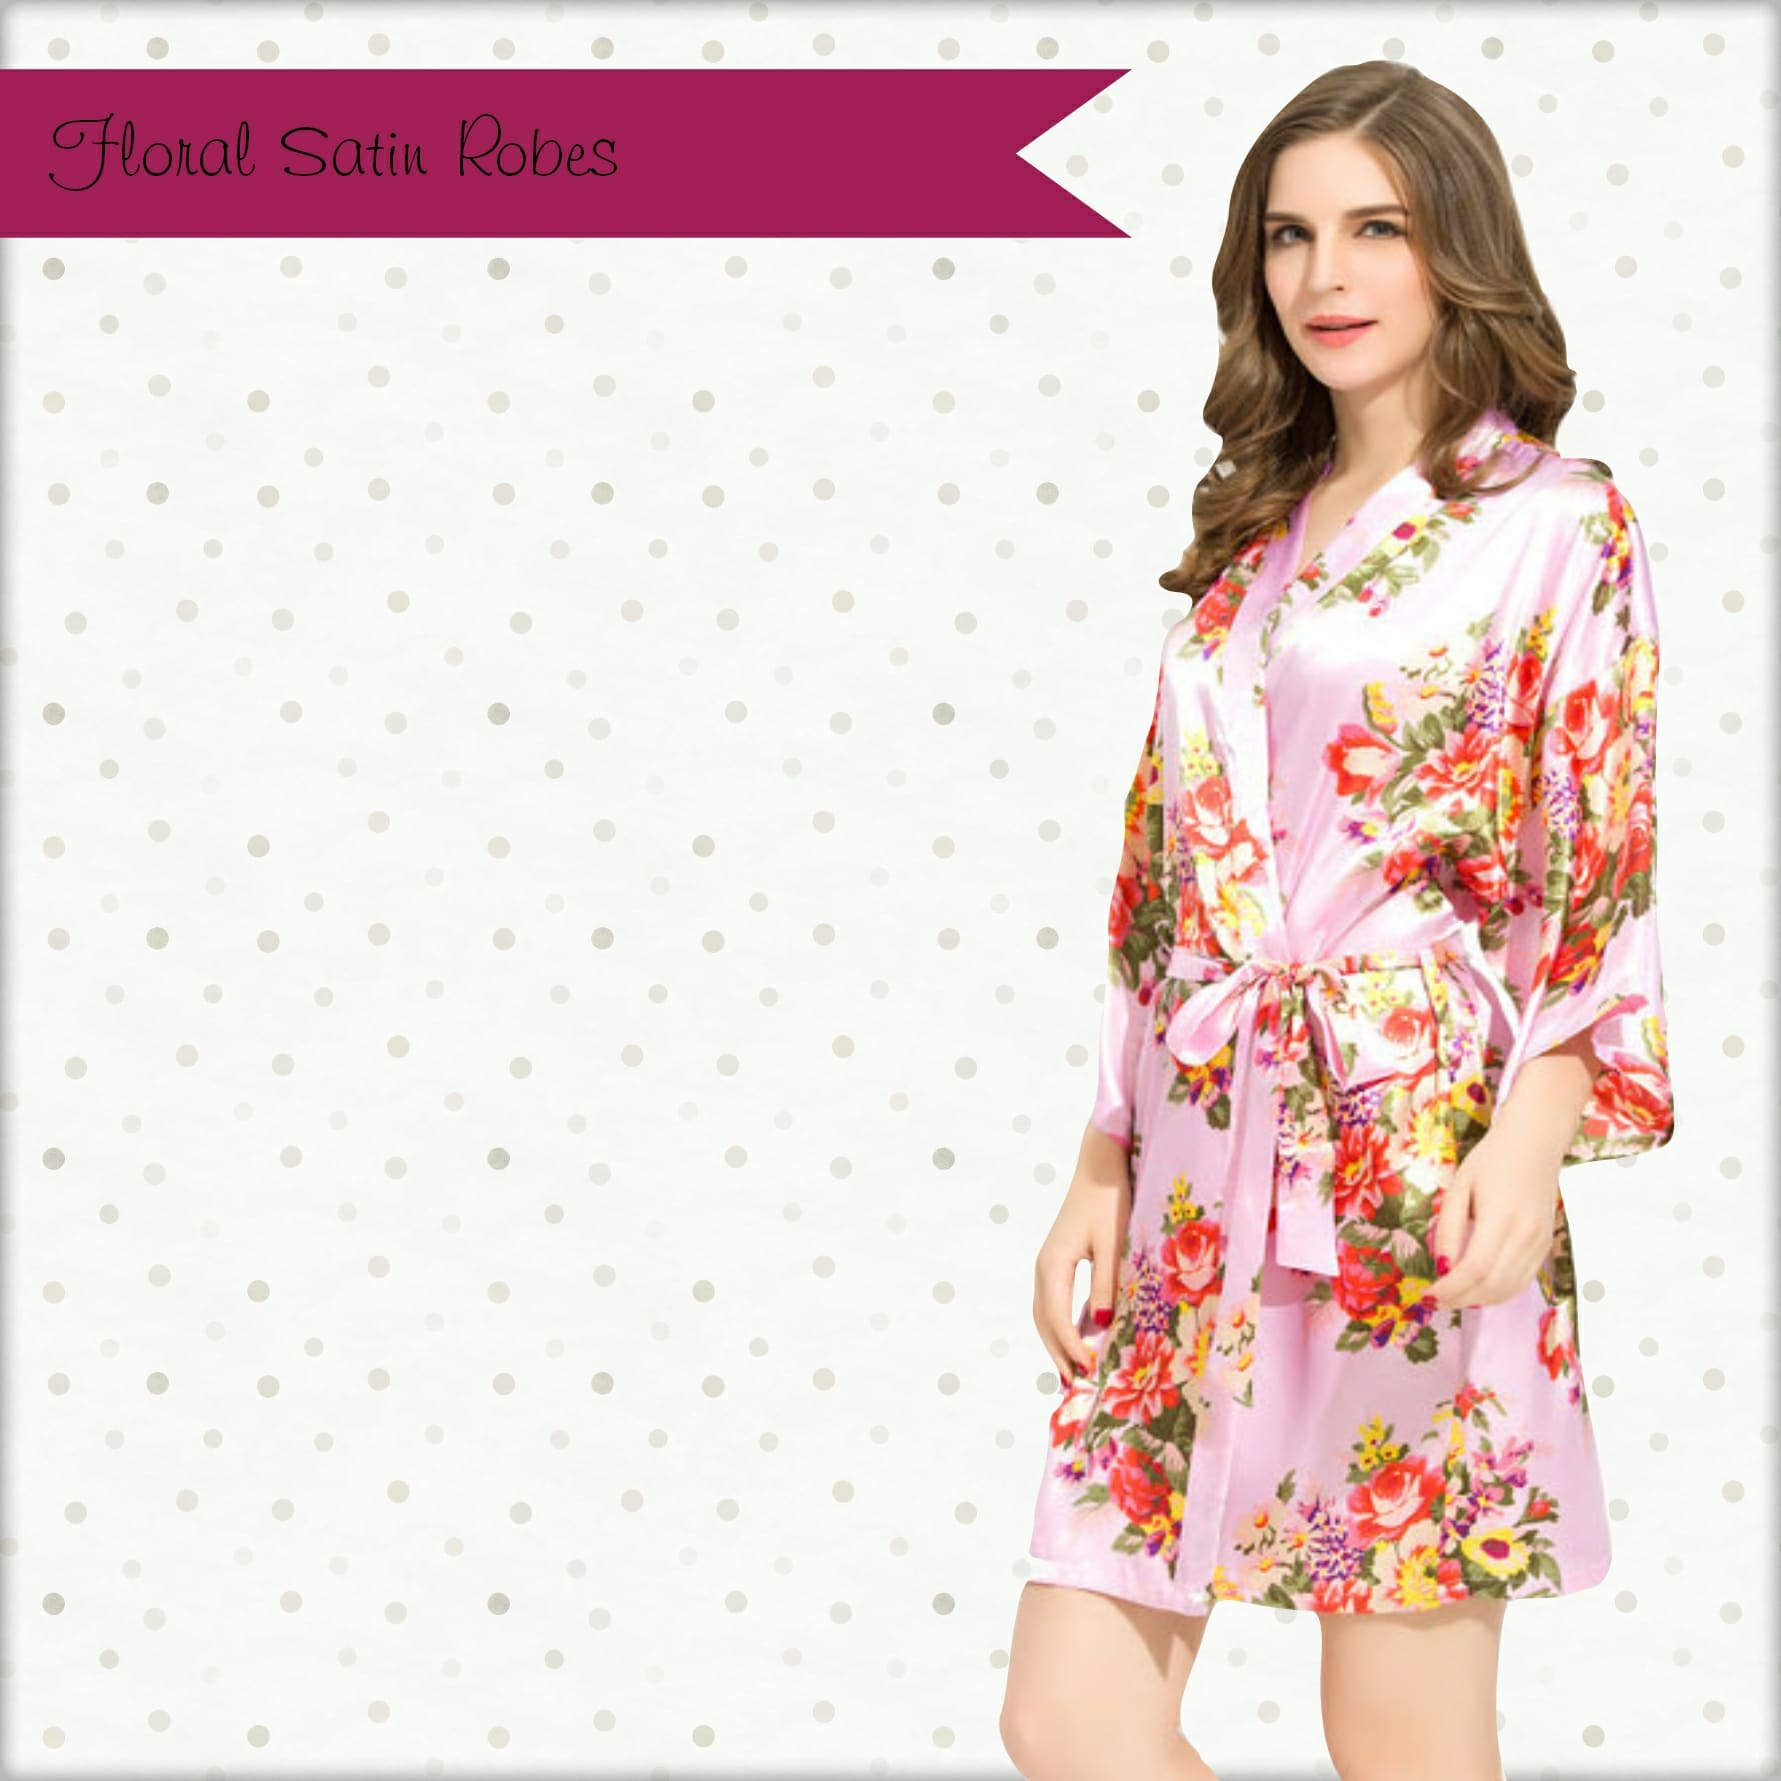 Diamante Floral Satin robe \u2013 Pink